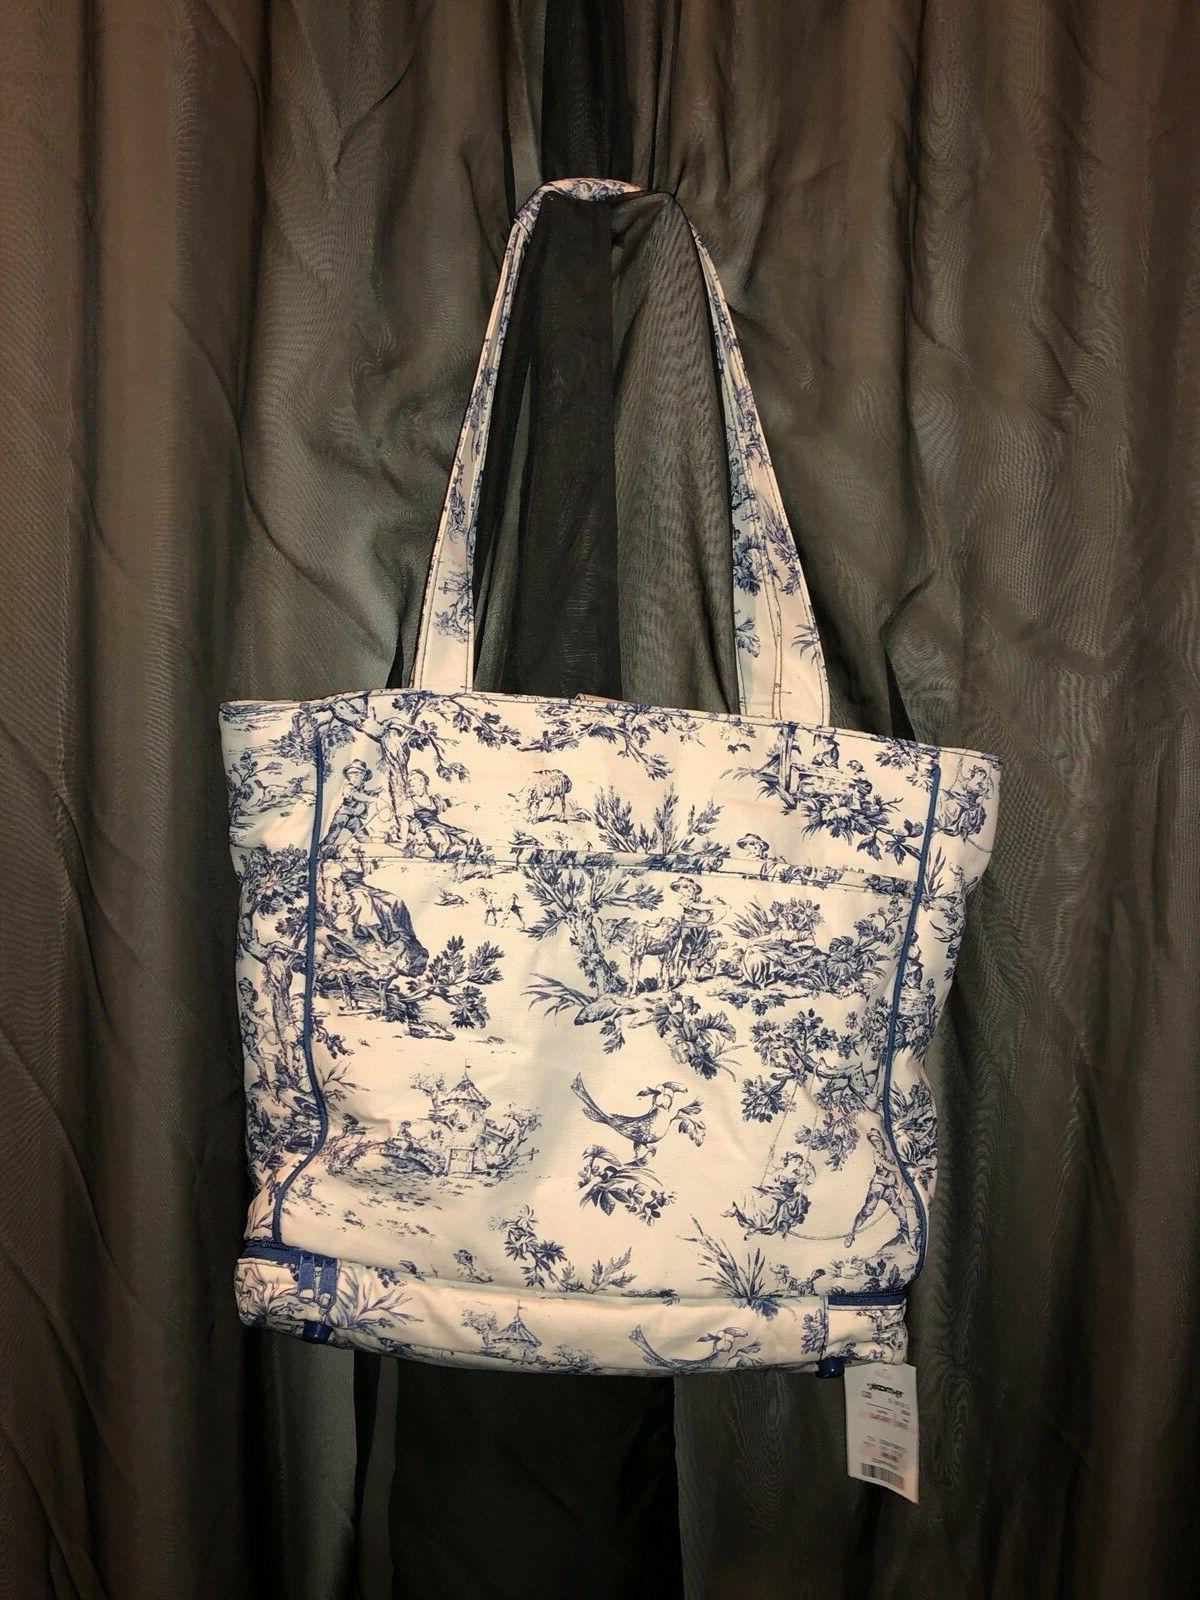 baby and co diaper bag blue toile